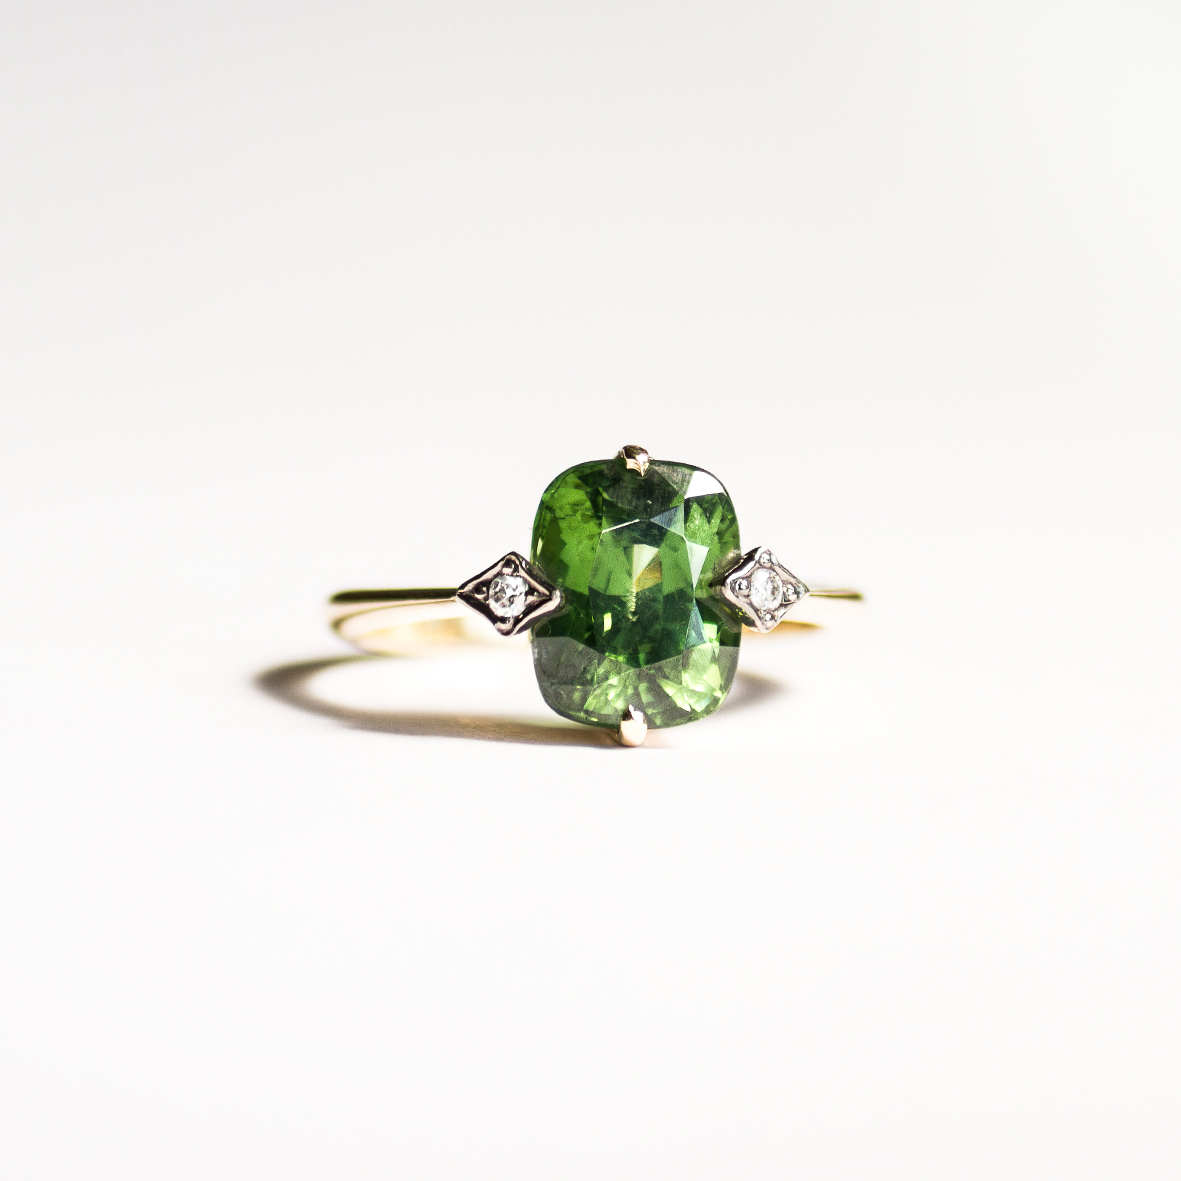 2. OONA_engagement_ficha1_green zircon_2